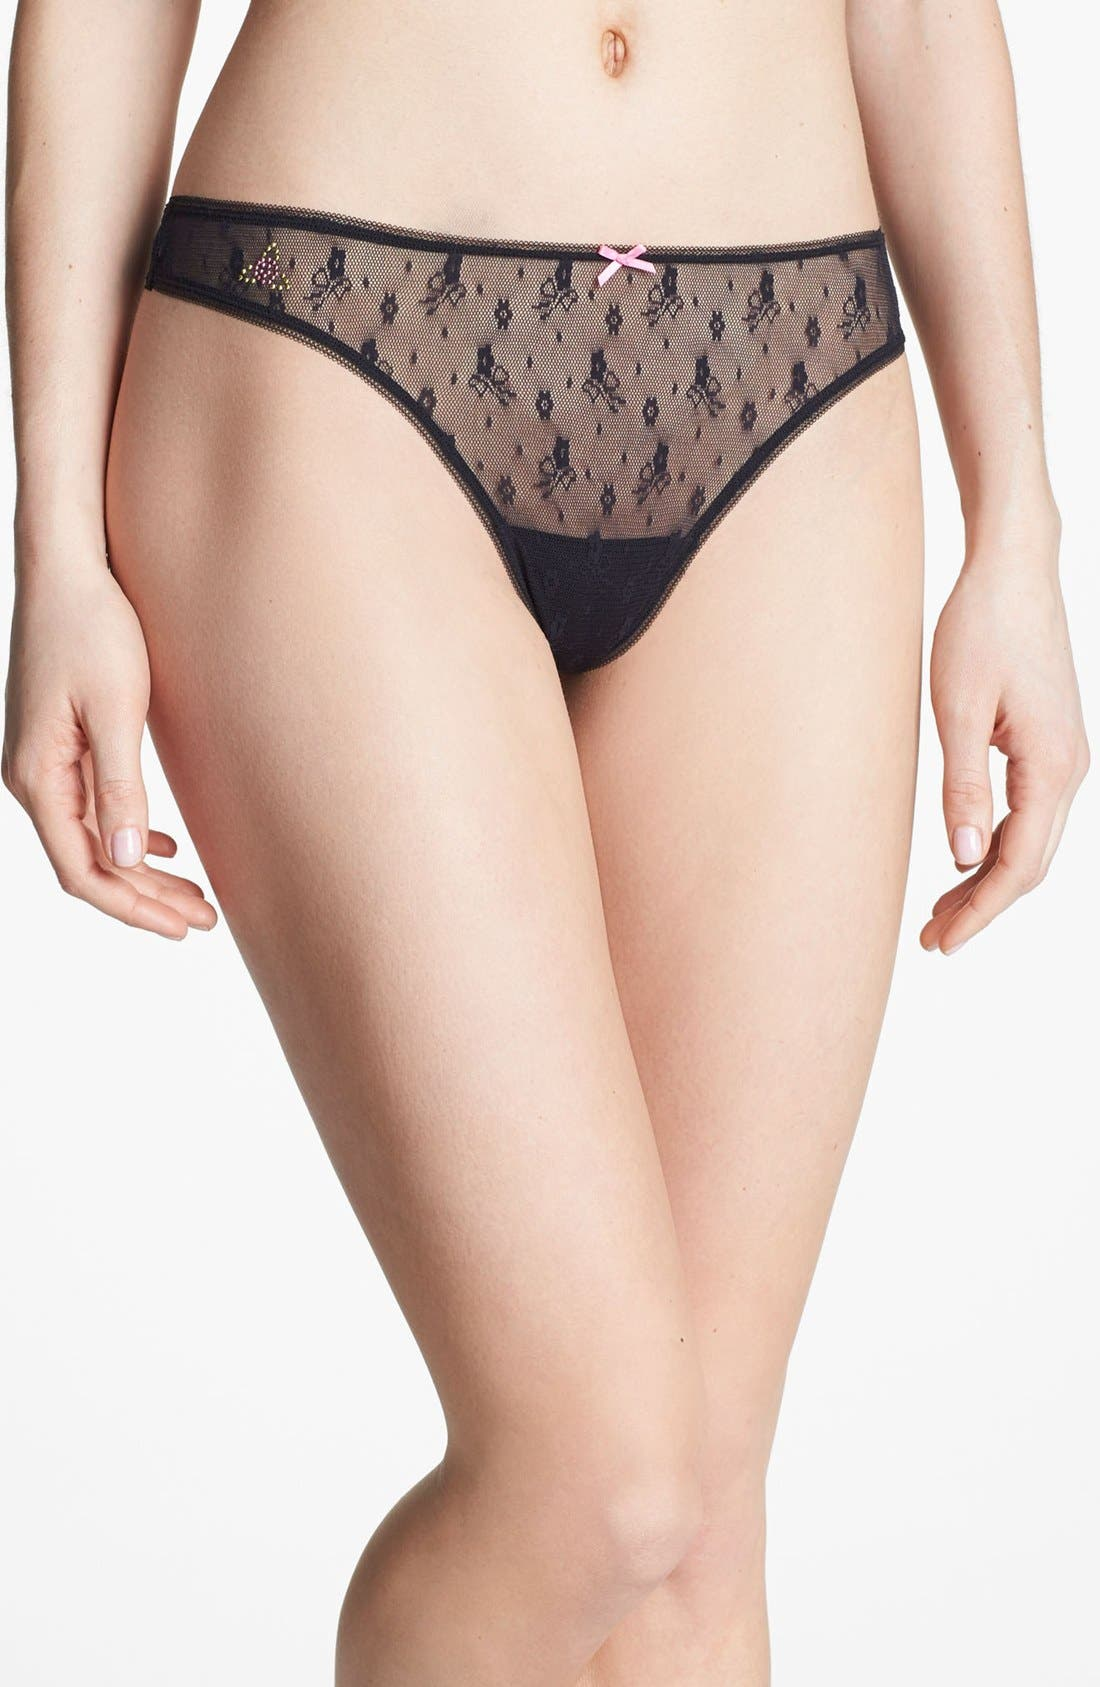 Alternate Image 1 Selected - Betsey Johnson 'Chantilly - Helenca' Lace Thong (3 for $27)